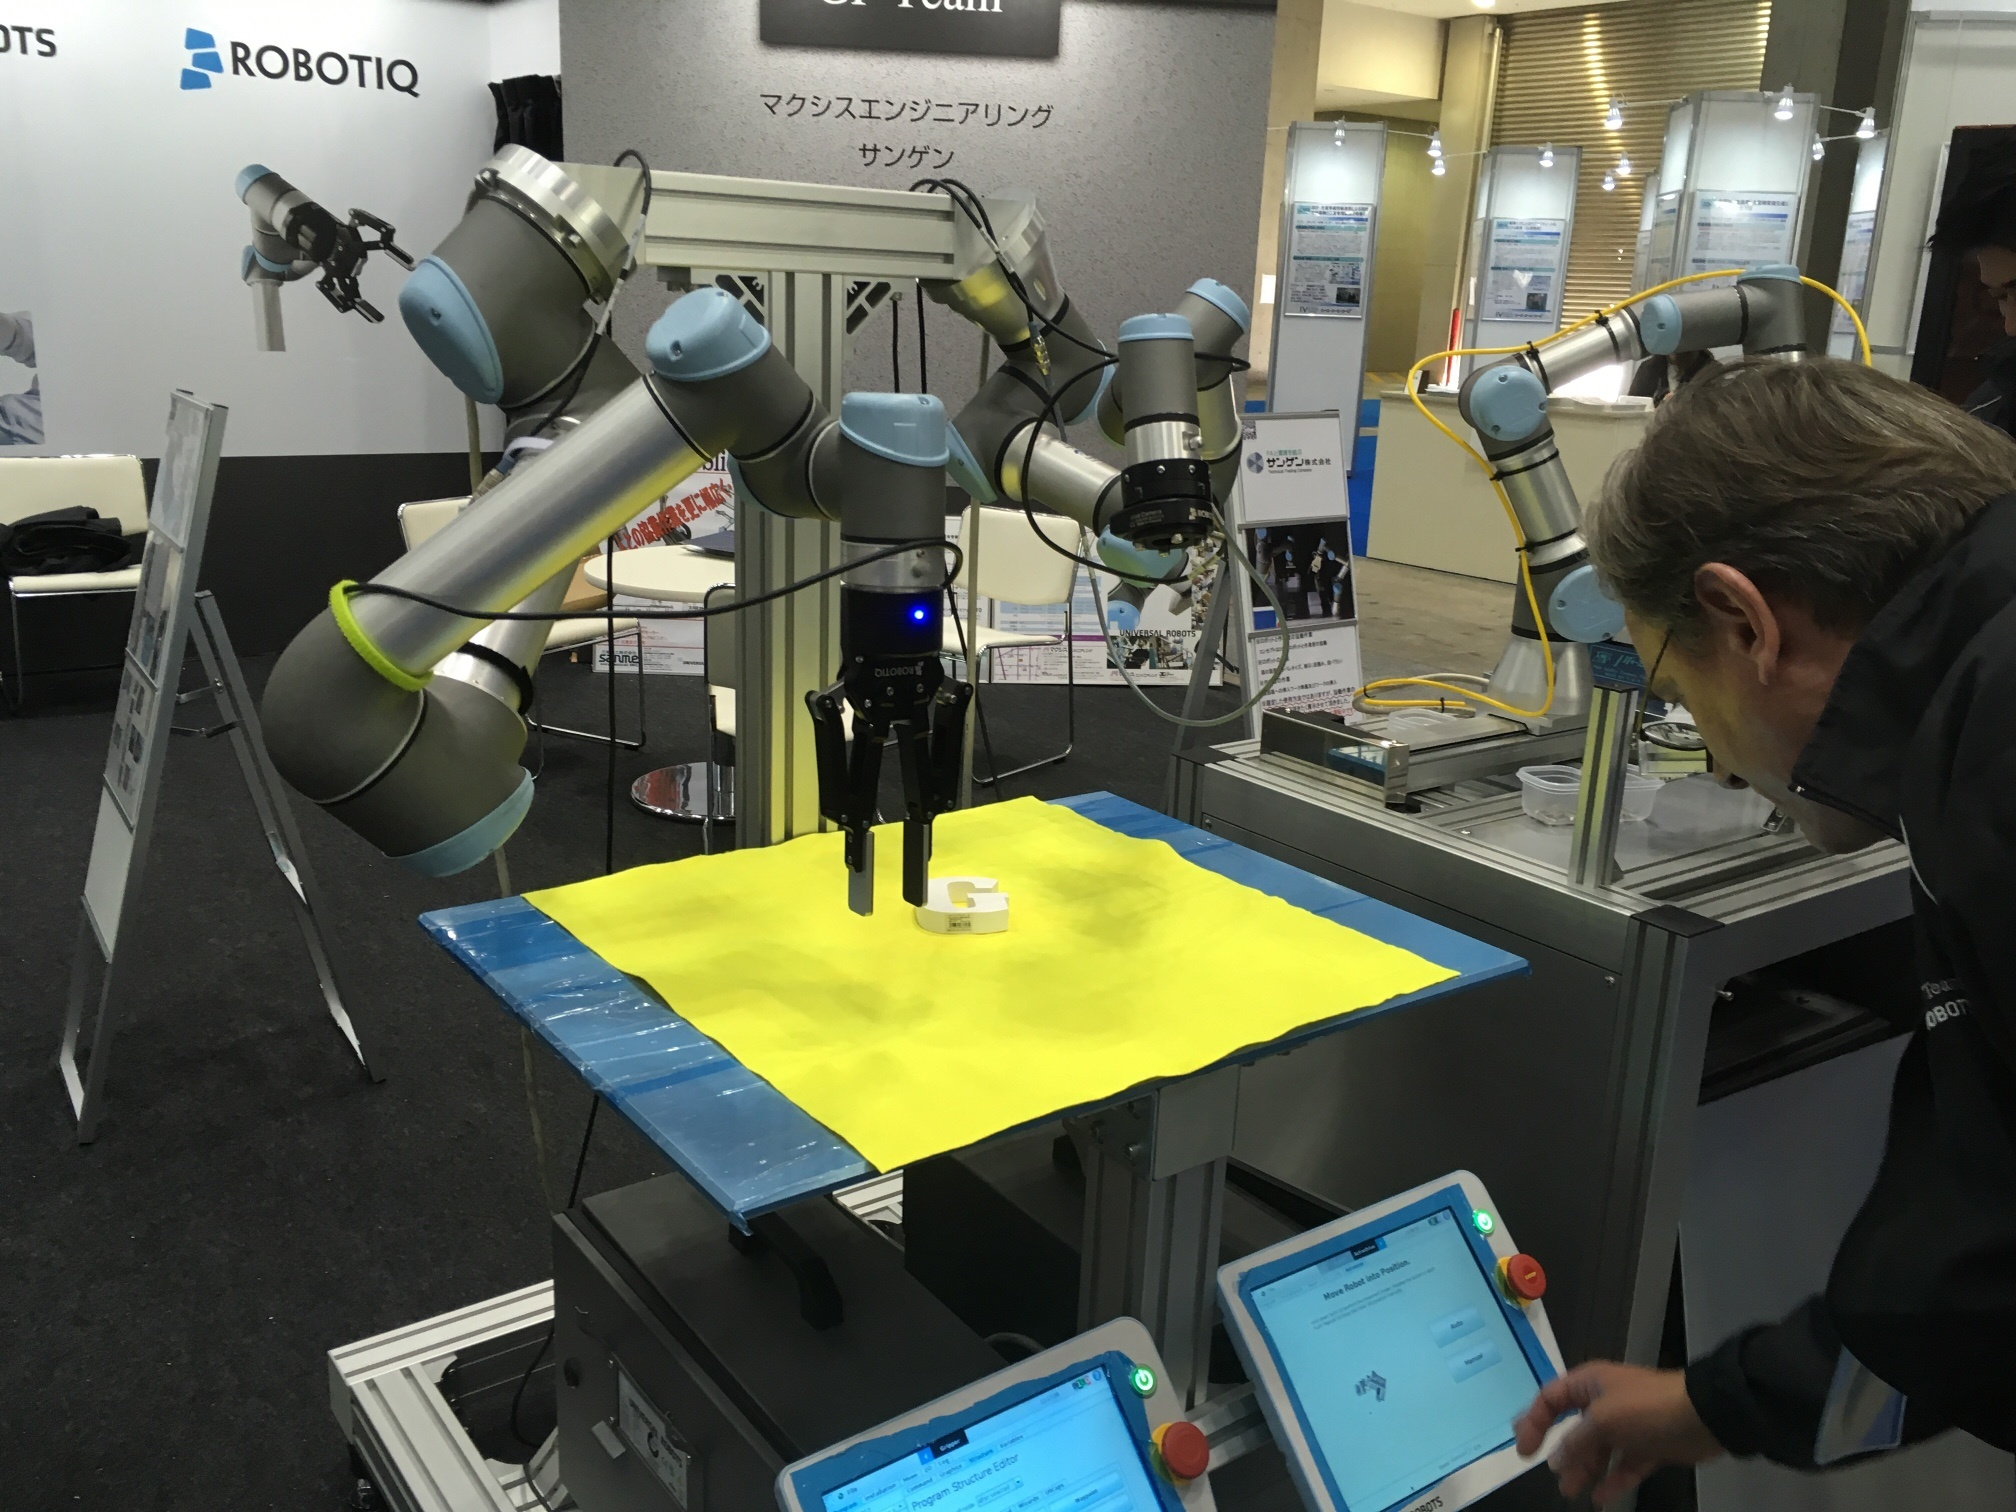 Robotiq in Grine booth